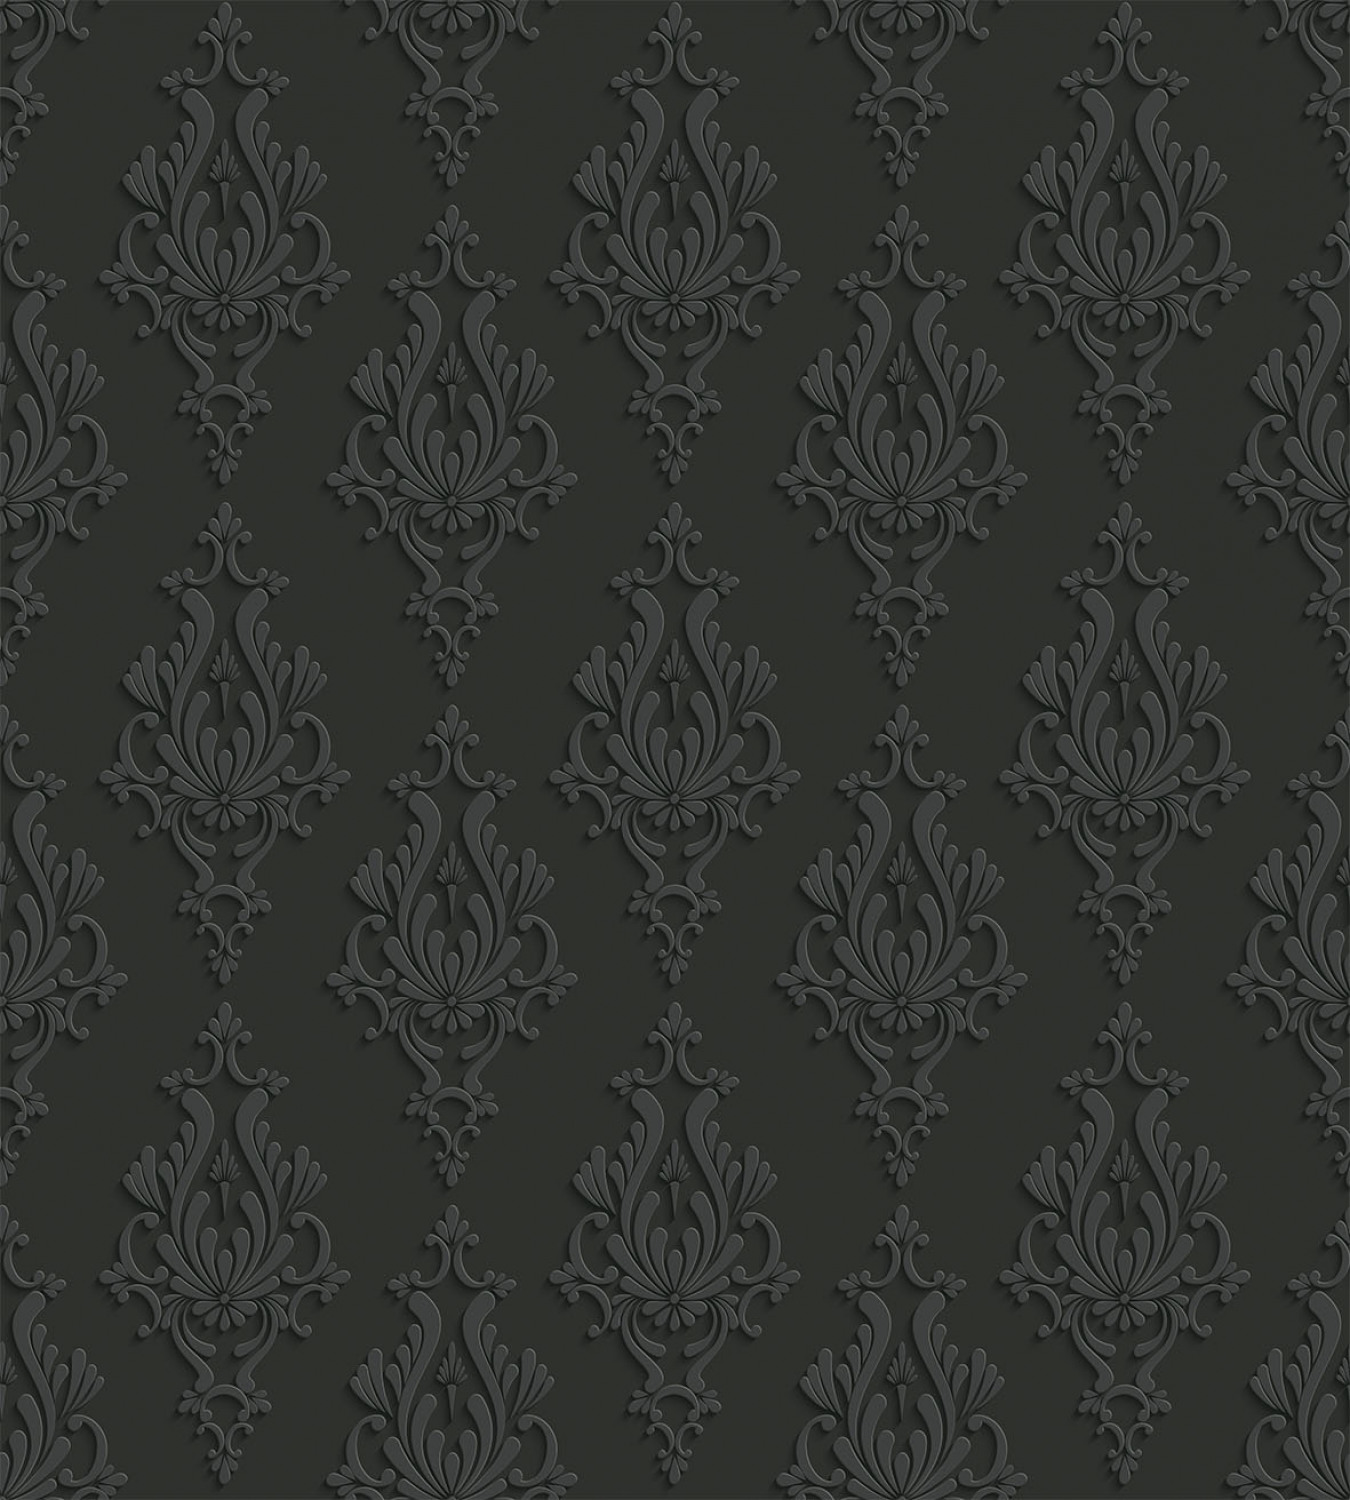 Dark-Grey-Duvet-Cover-Set-Twin-Queen-King-Sizes-with-Pillow-Shams-Ambesonne thumbnail 8